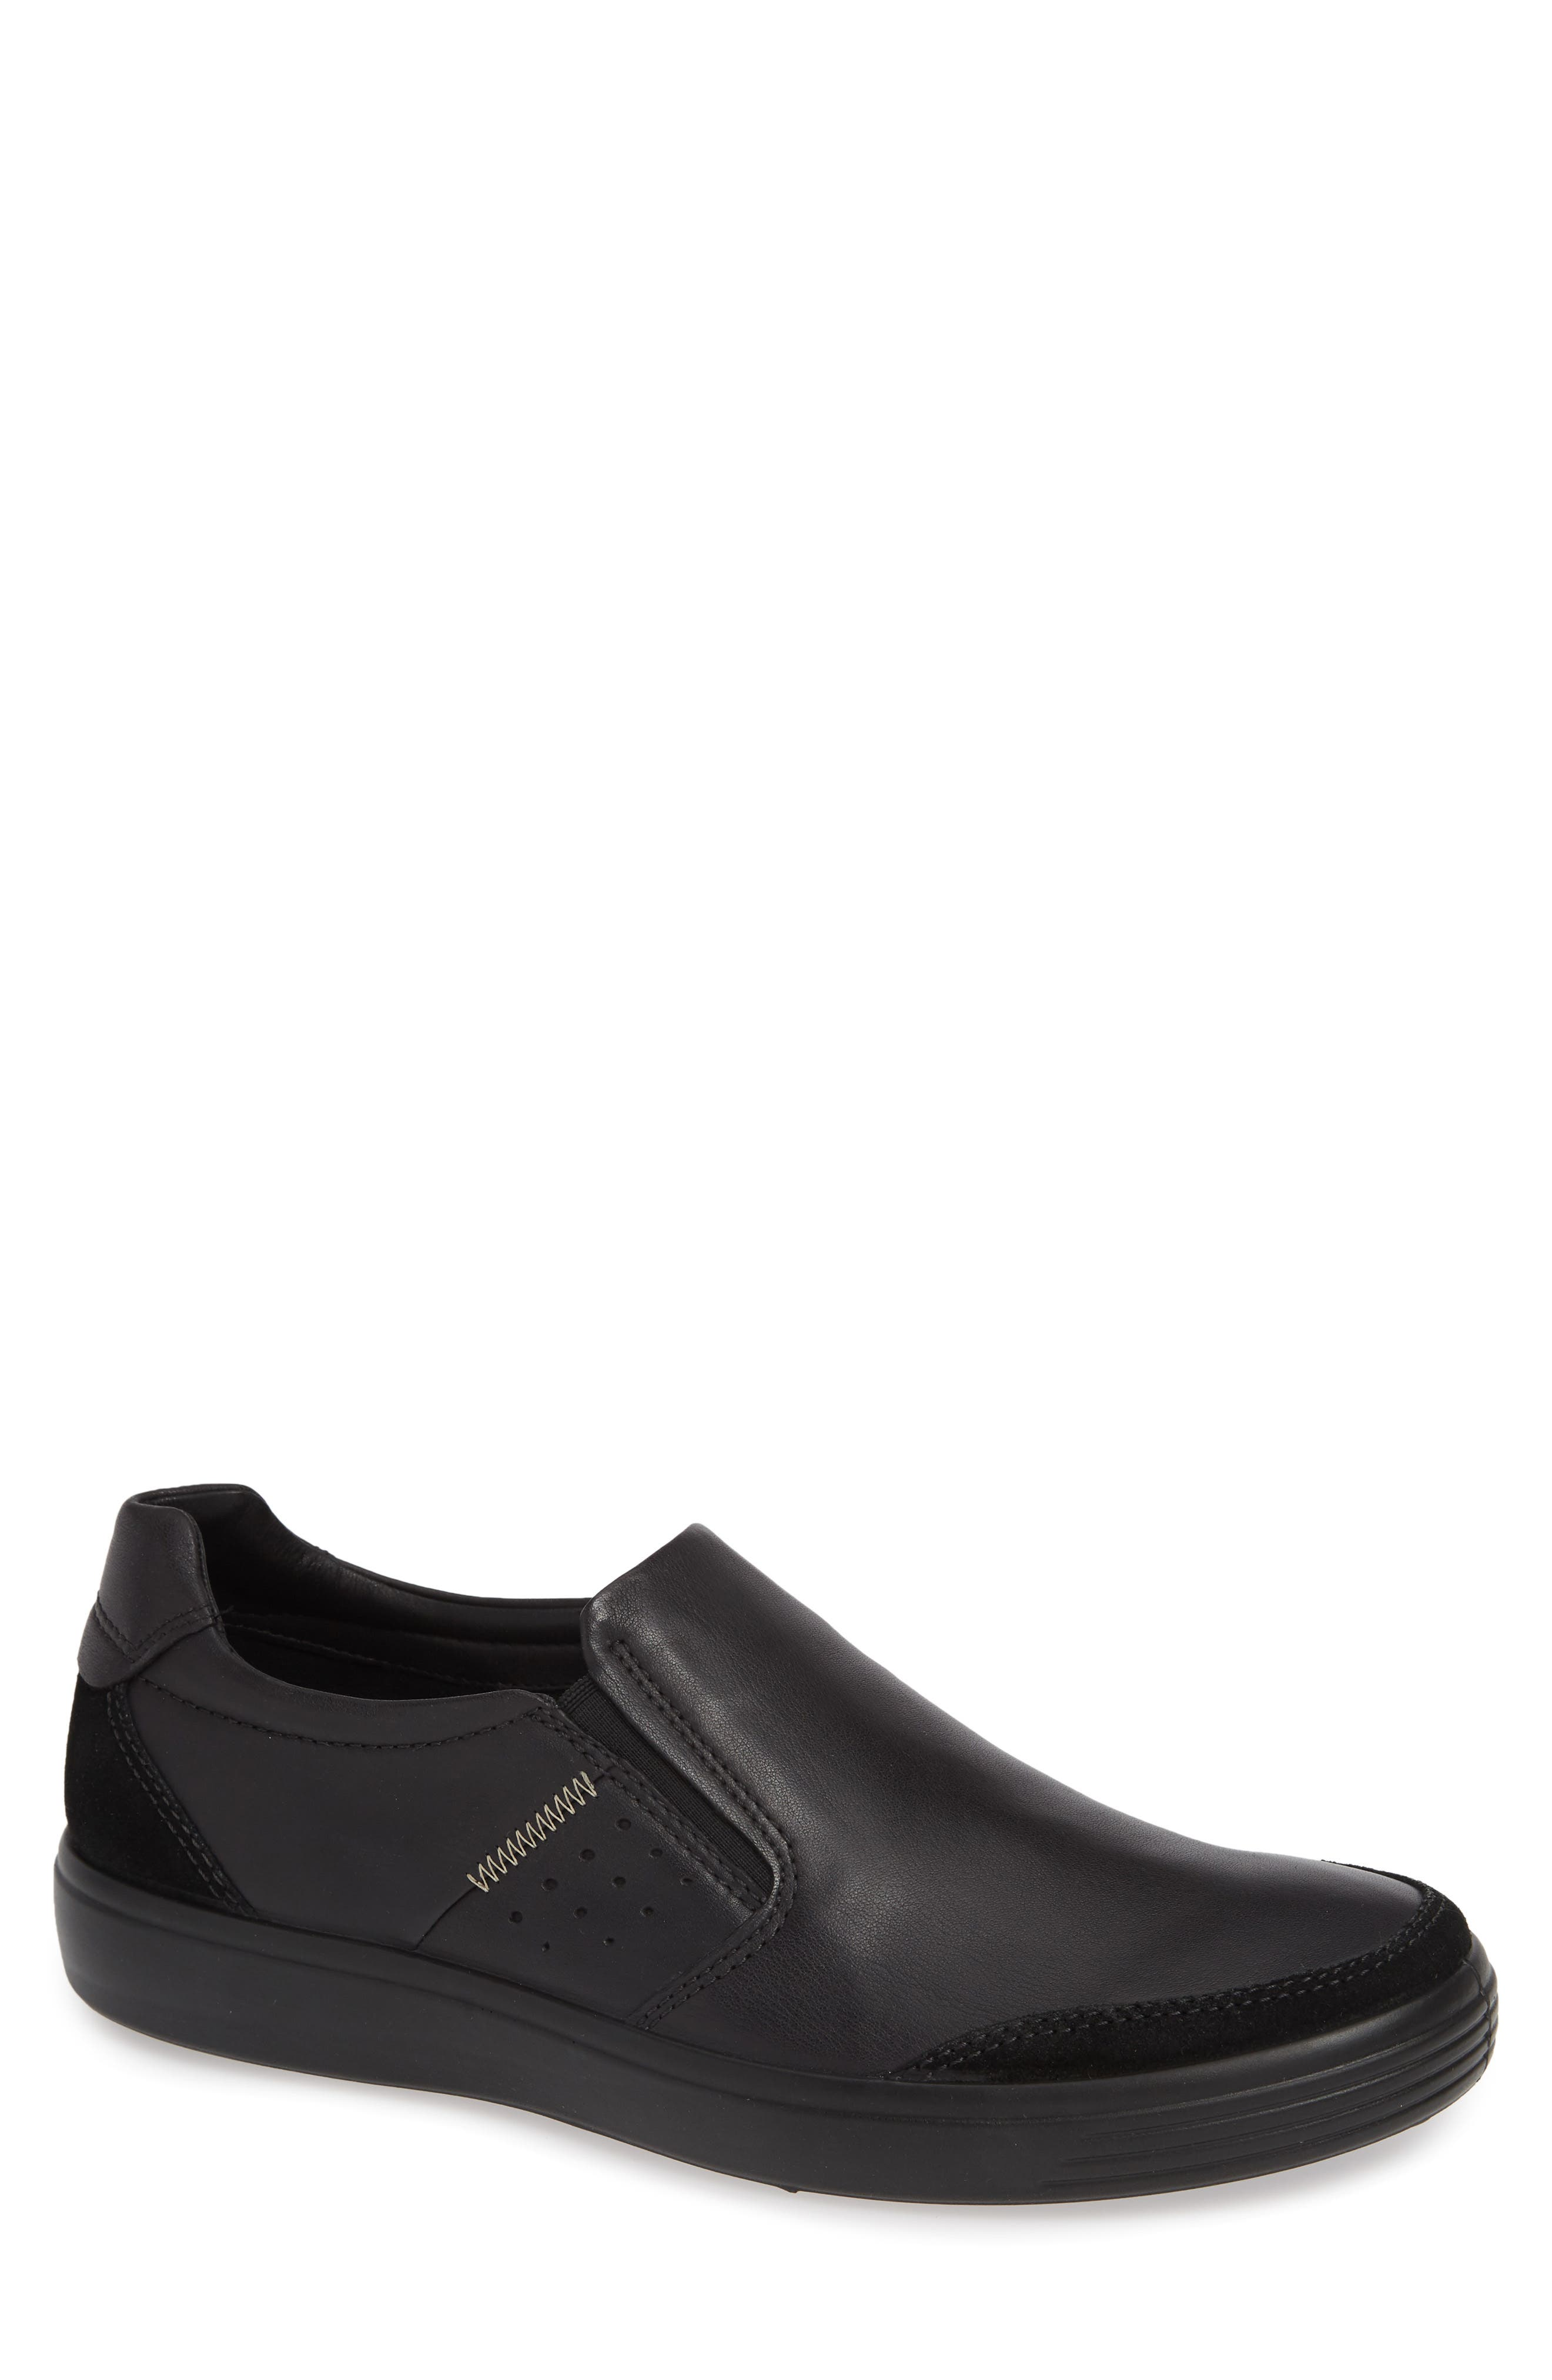 ECCO Soft 7 Relaxed Slip-On, Main, color, BLACK LEATHER